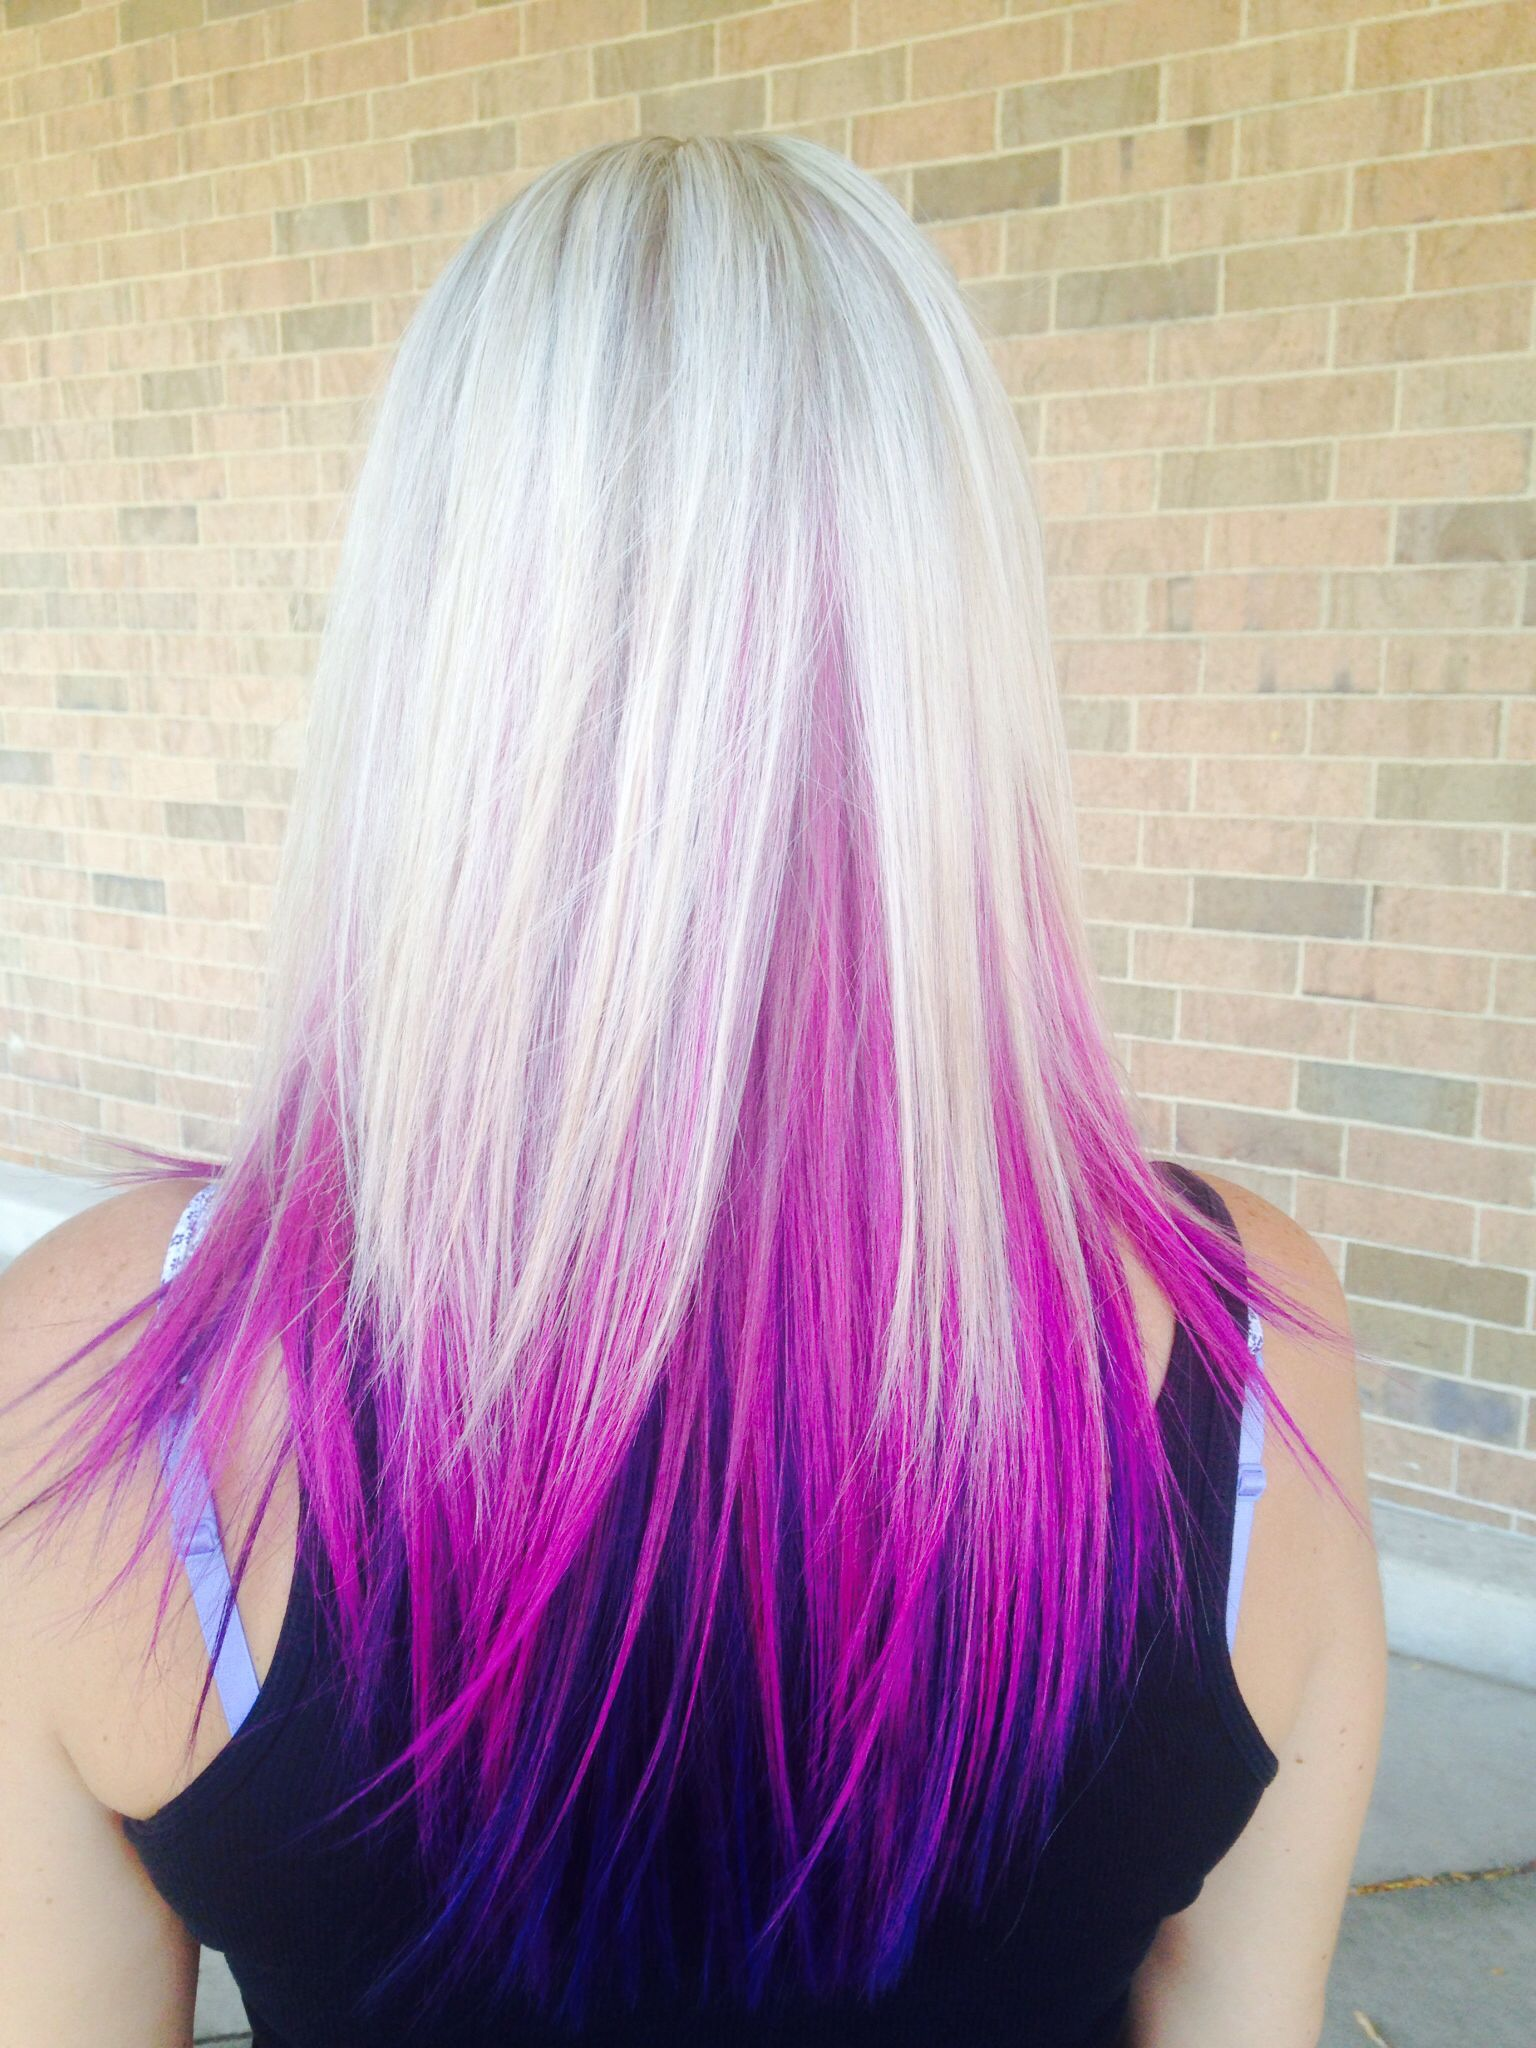 Purple pink under blonde highlight Color && Styles